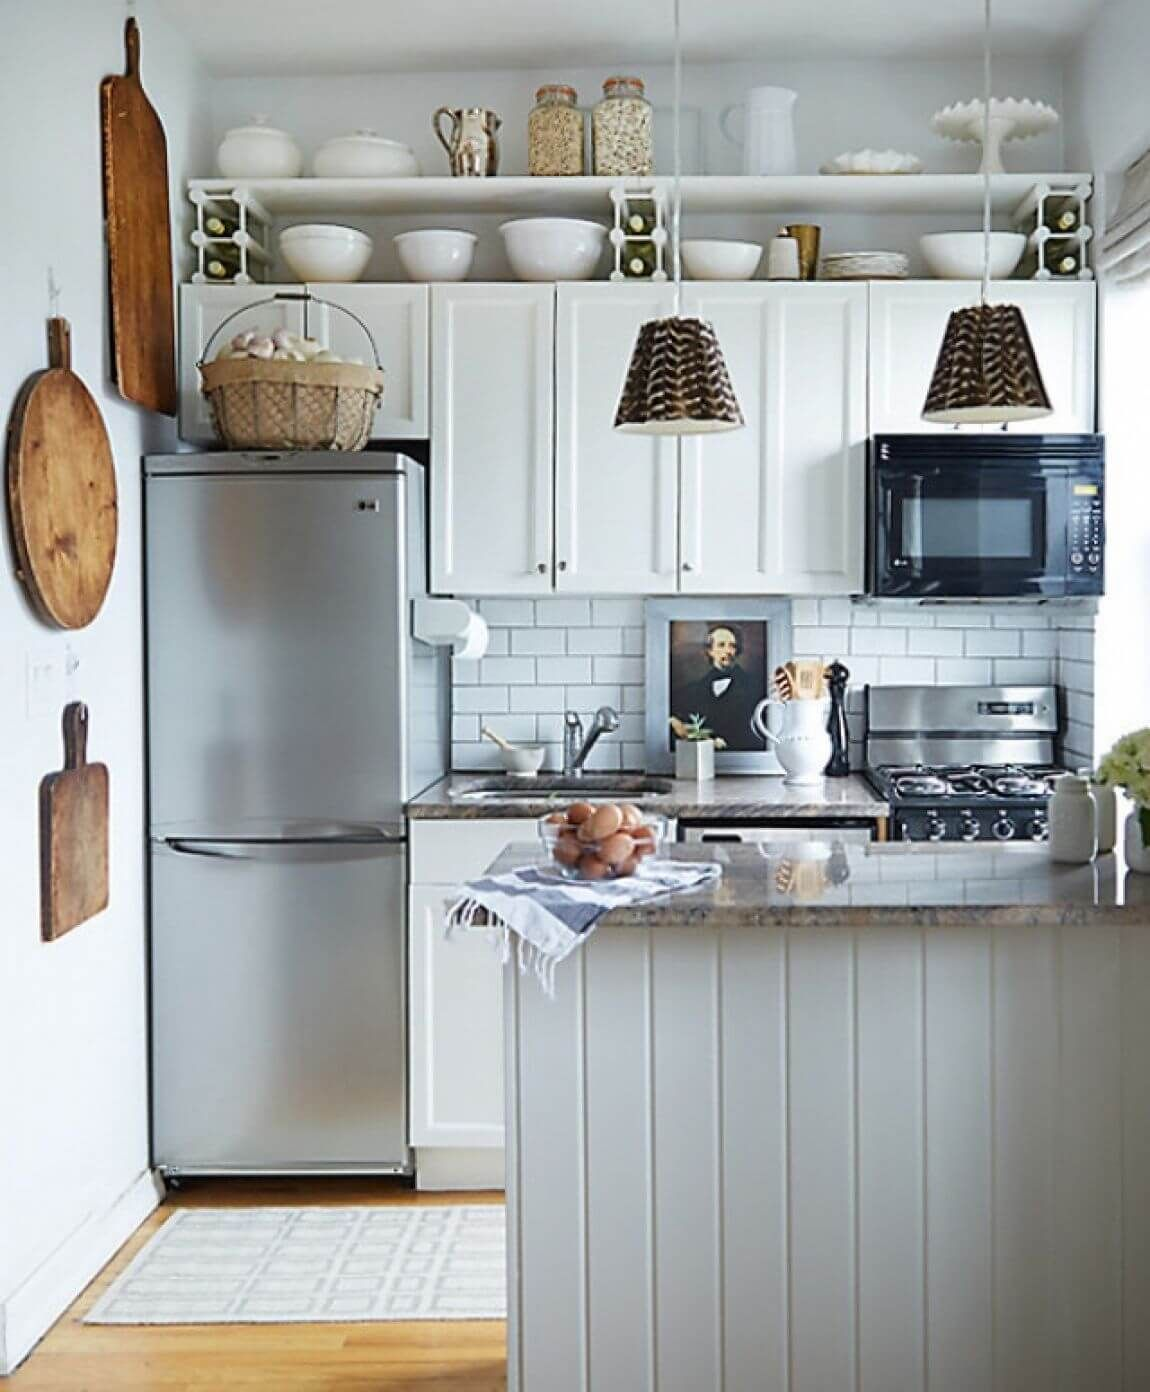 3 Attractive Small Kitchen Decor Ideas Small Space Kitchen Small Apartment Kitchen Kitchen Remodel Small